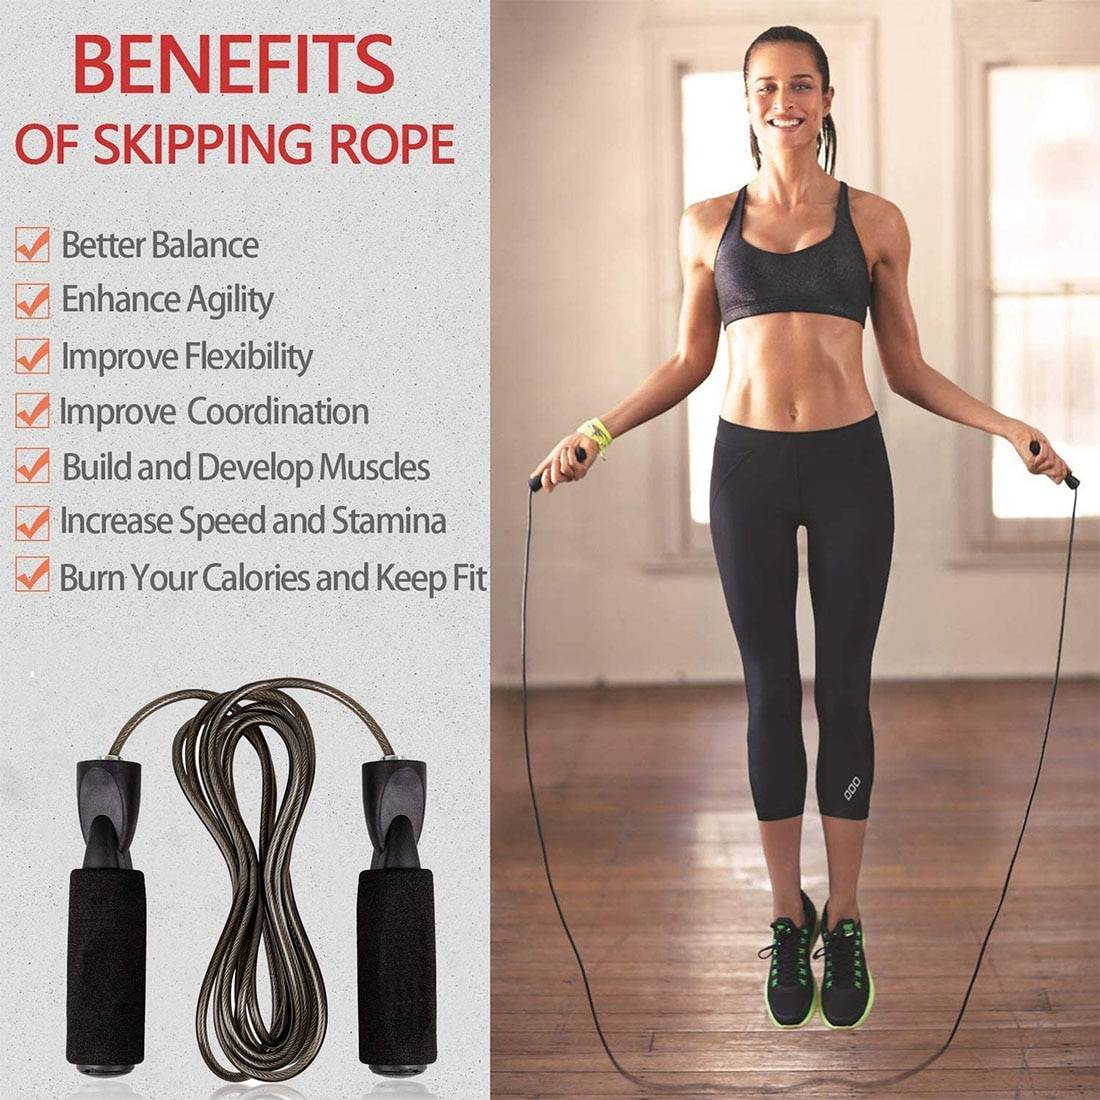 Steel Wire Jump Rope Fitness Equipment Jump Ropes 054b4f3ea543c990f6b125: Style 1|Style 2